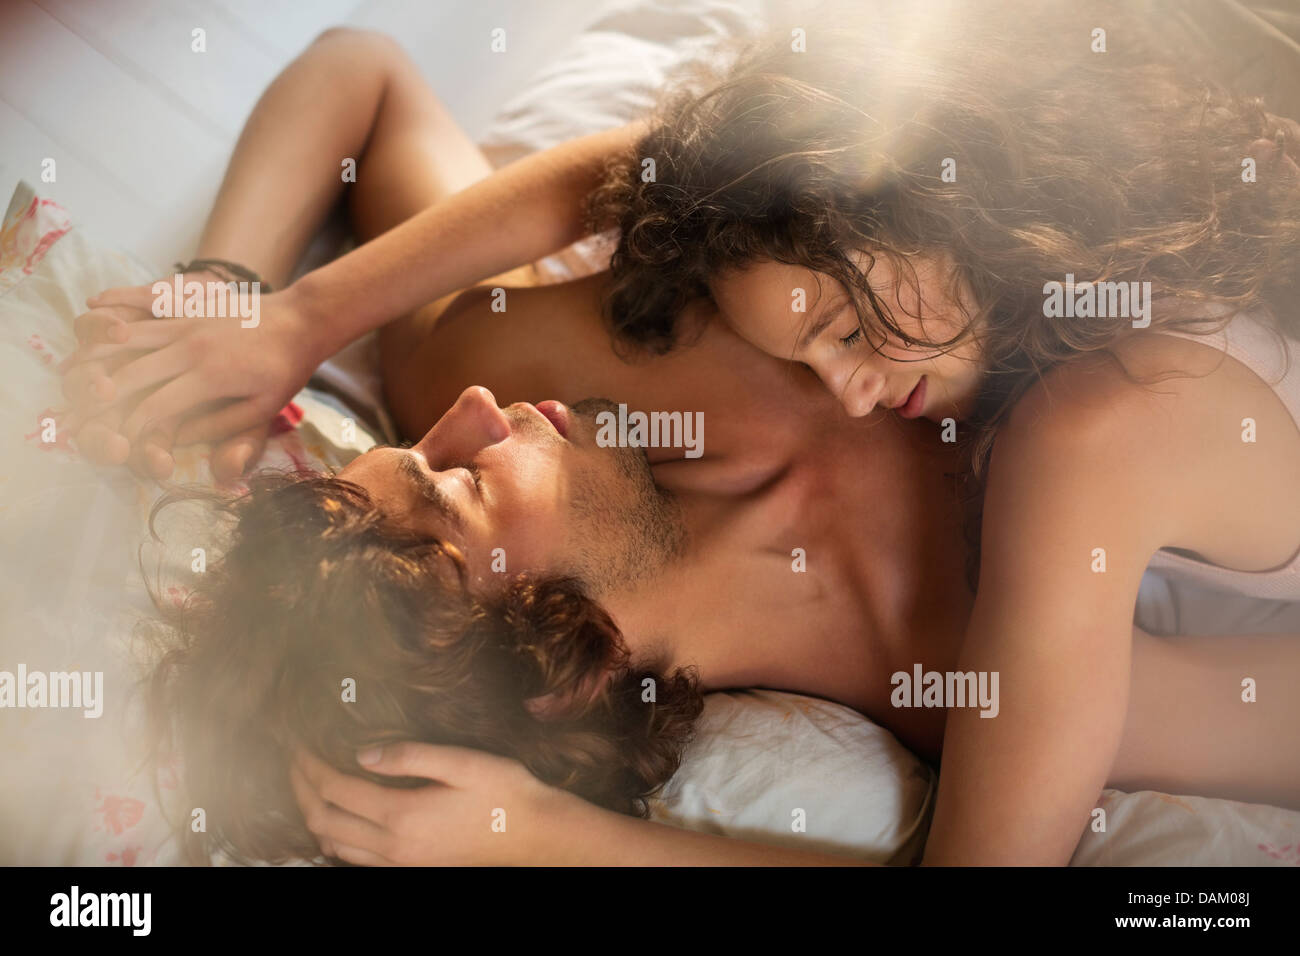 Couple relaxing together in bed Photo Stock